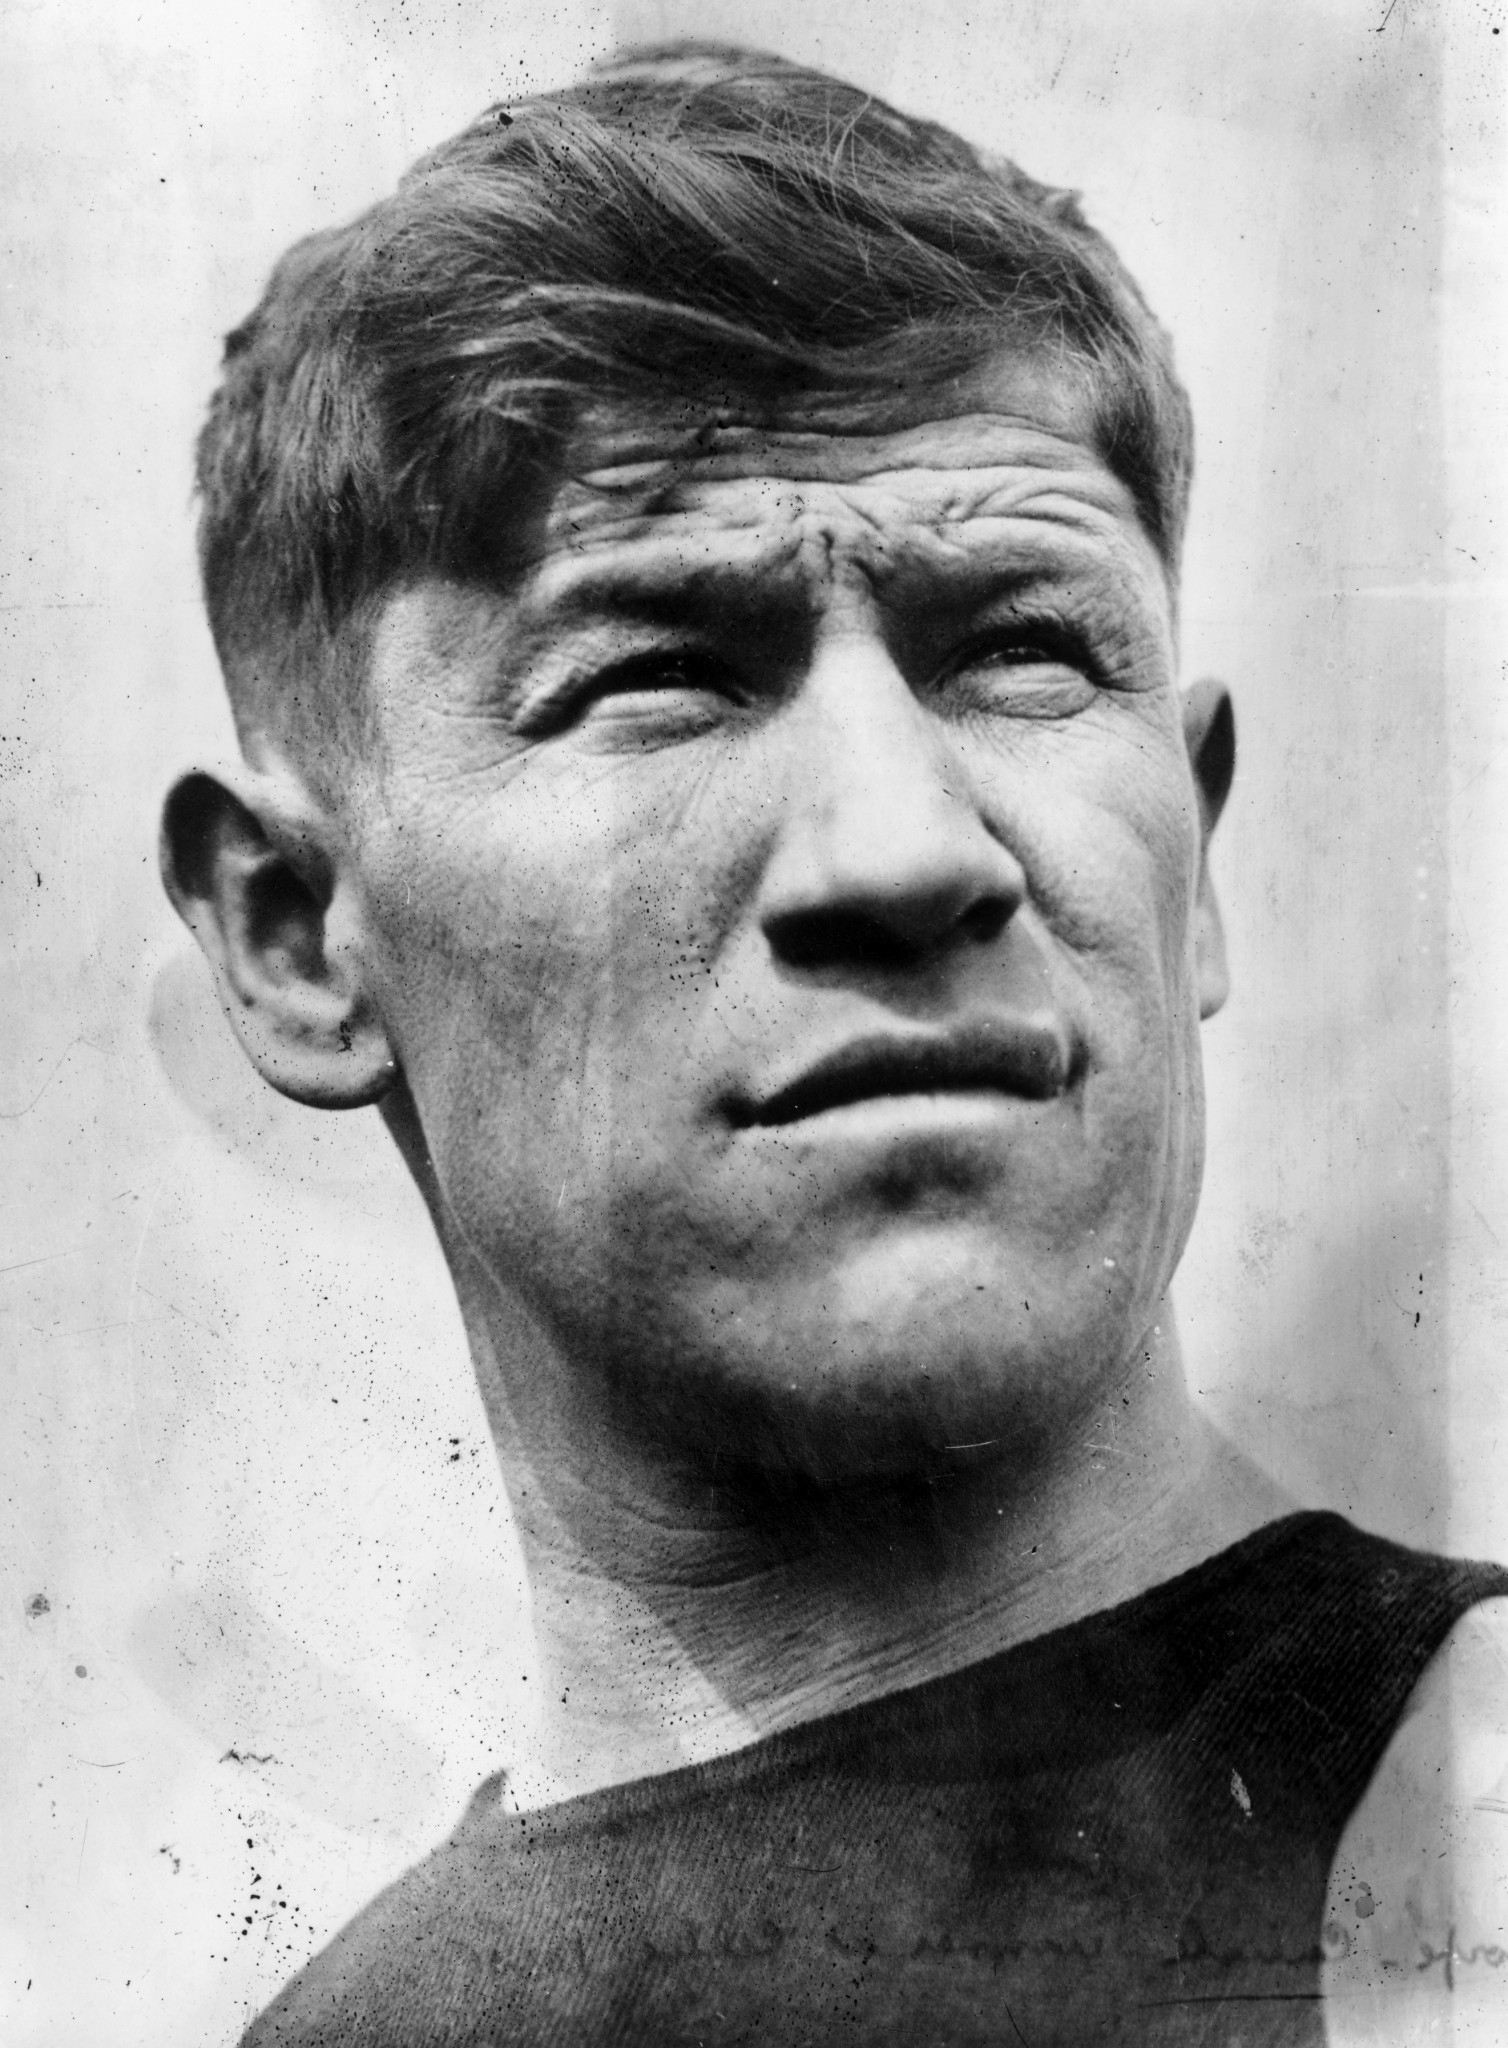 Campaign launched to recognise Thorpe as sole champion from Stockholm 1912